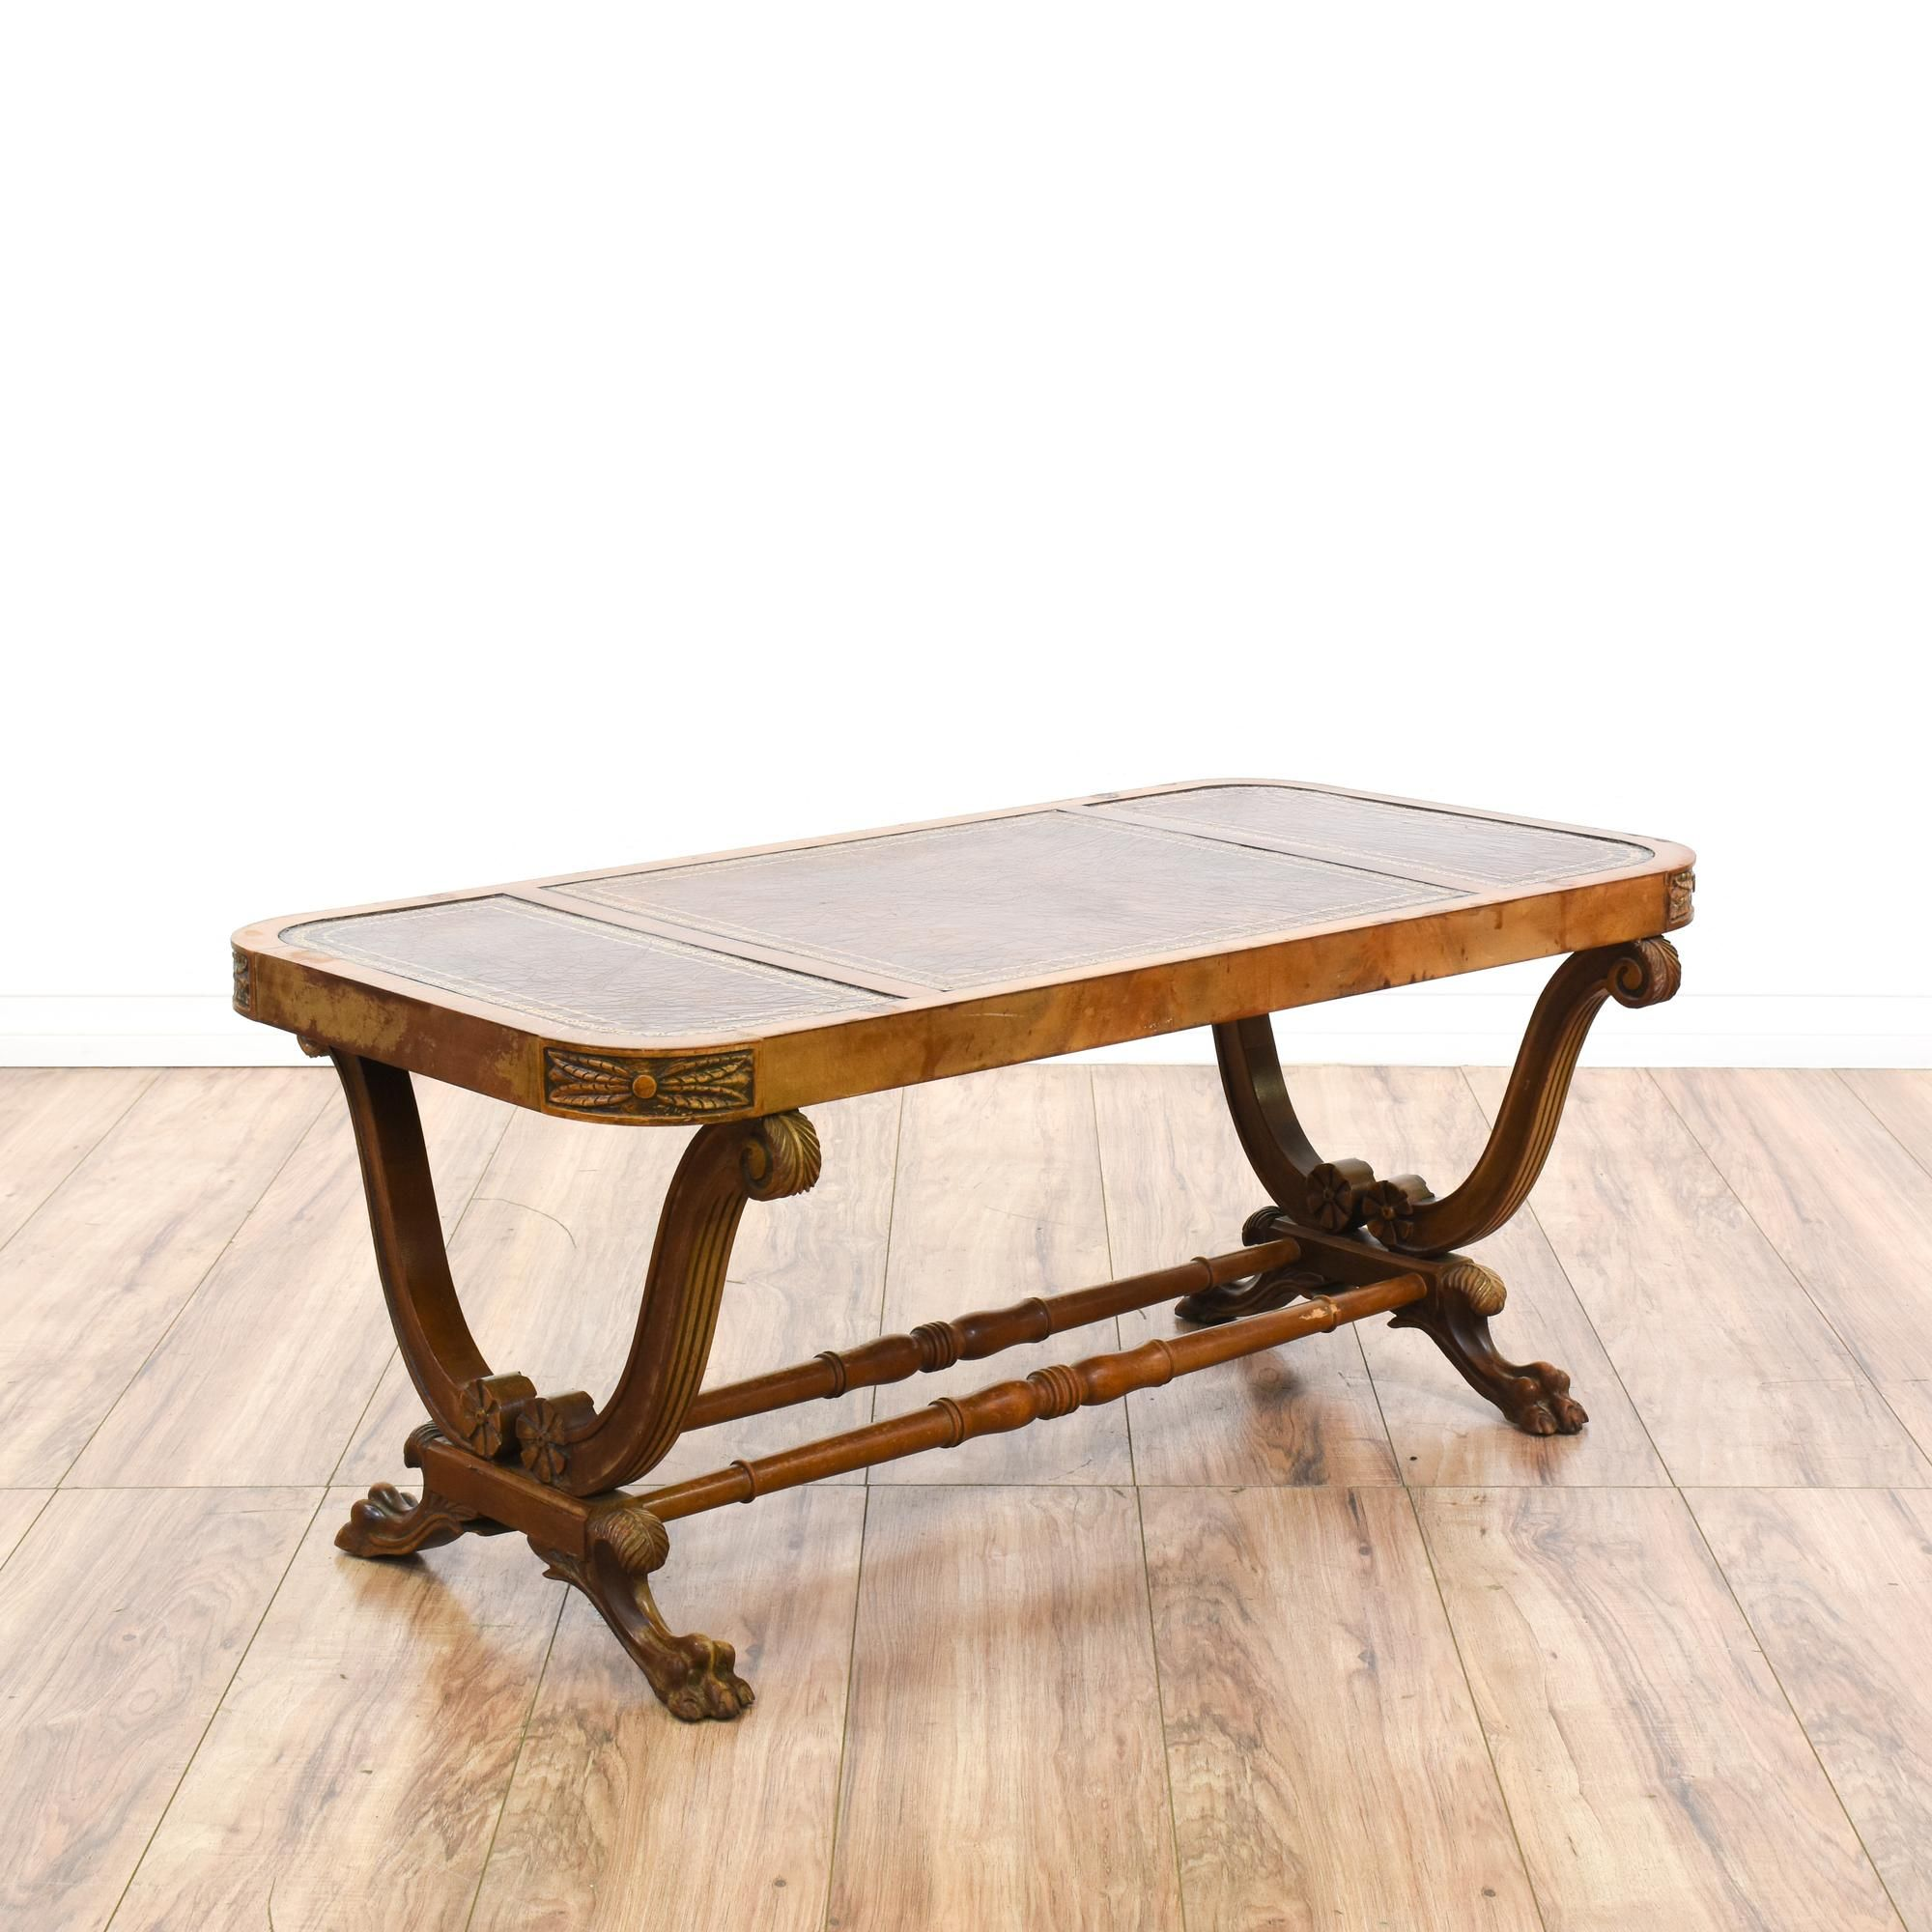 This ornate coffee table is featured in a solid wood with a glossy